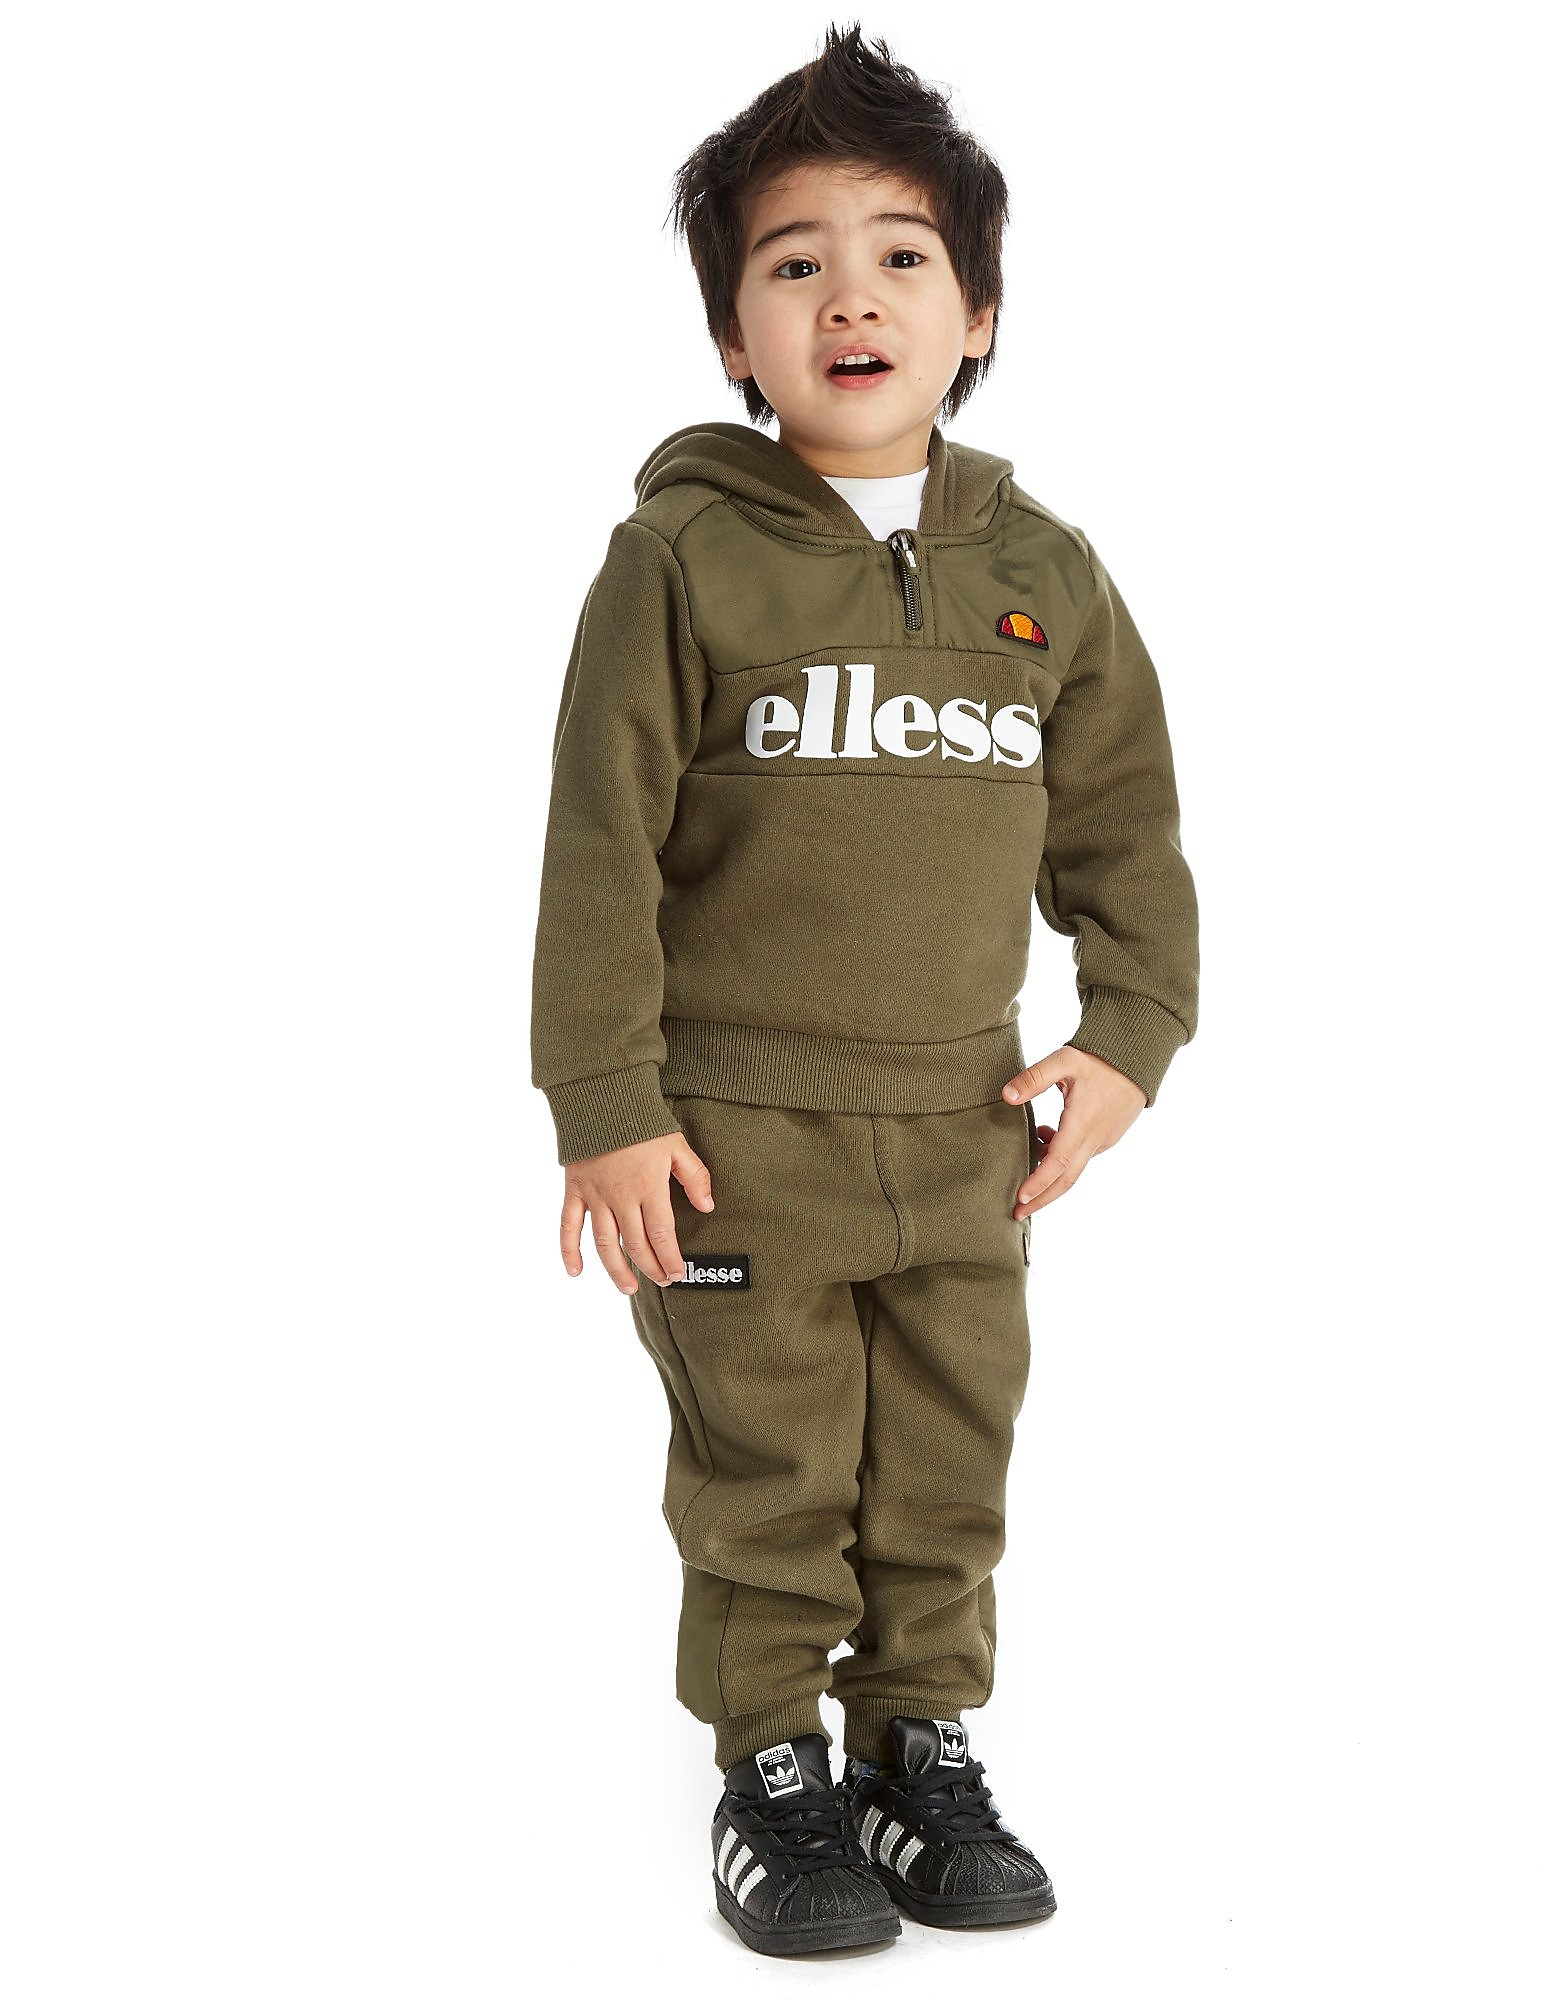 Ellesse Calleno 1/4 Zip Suit Infant